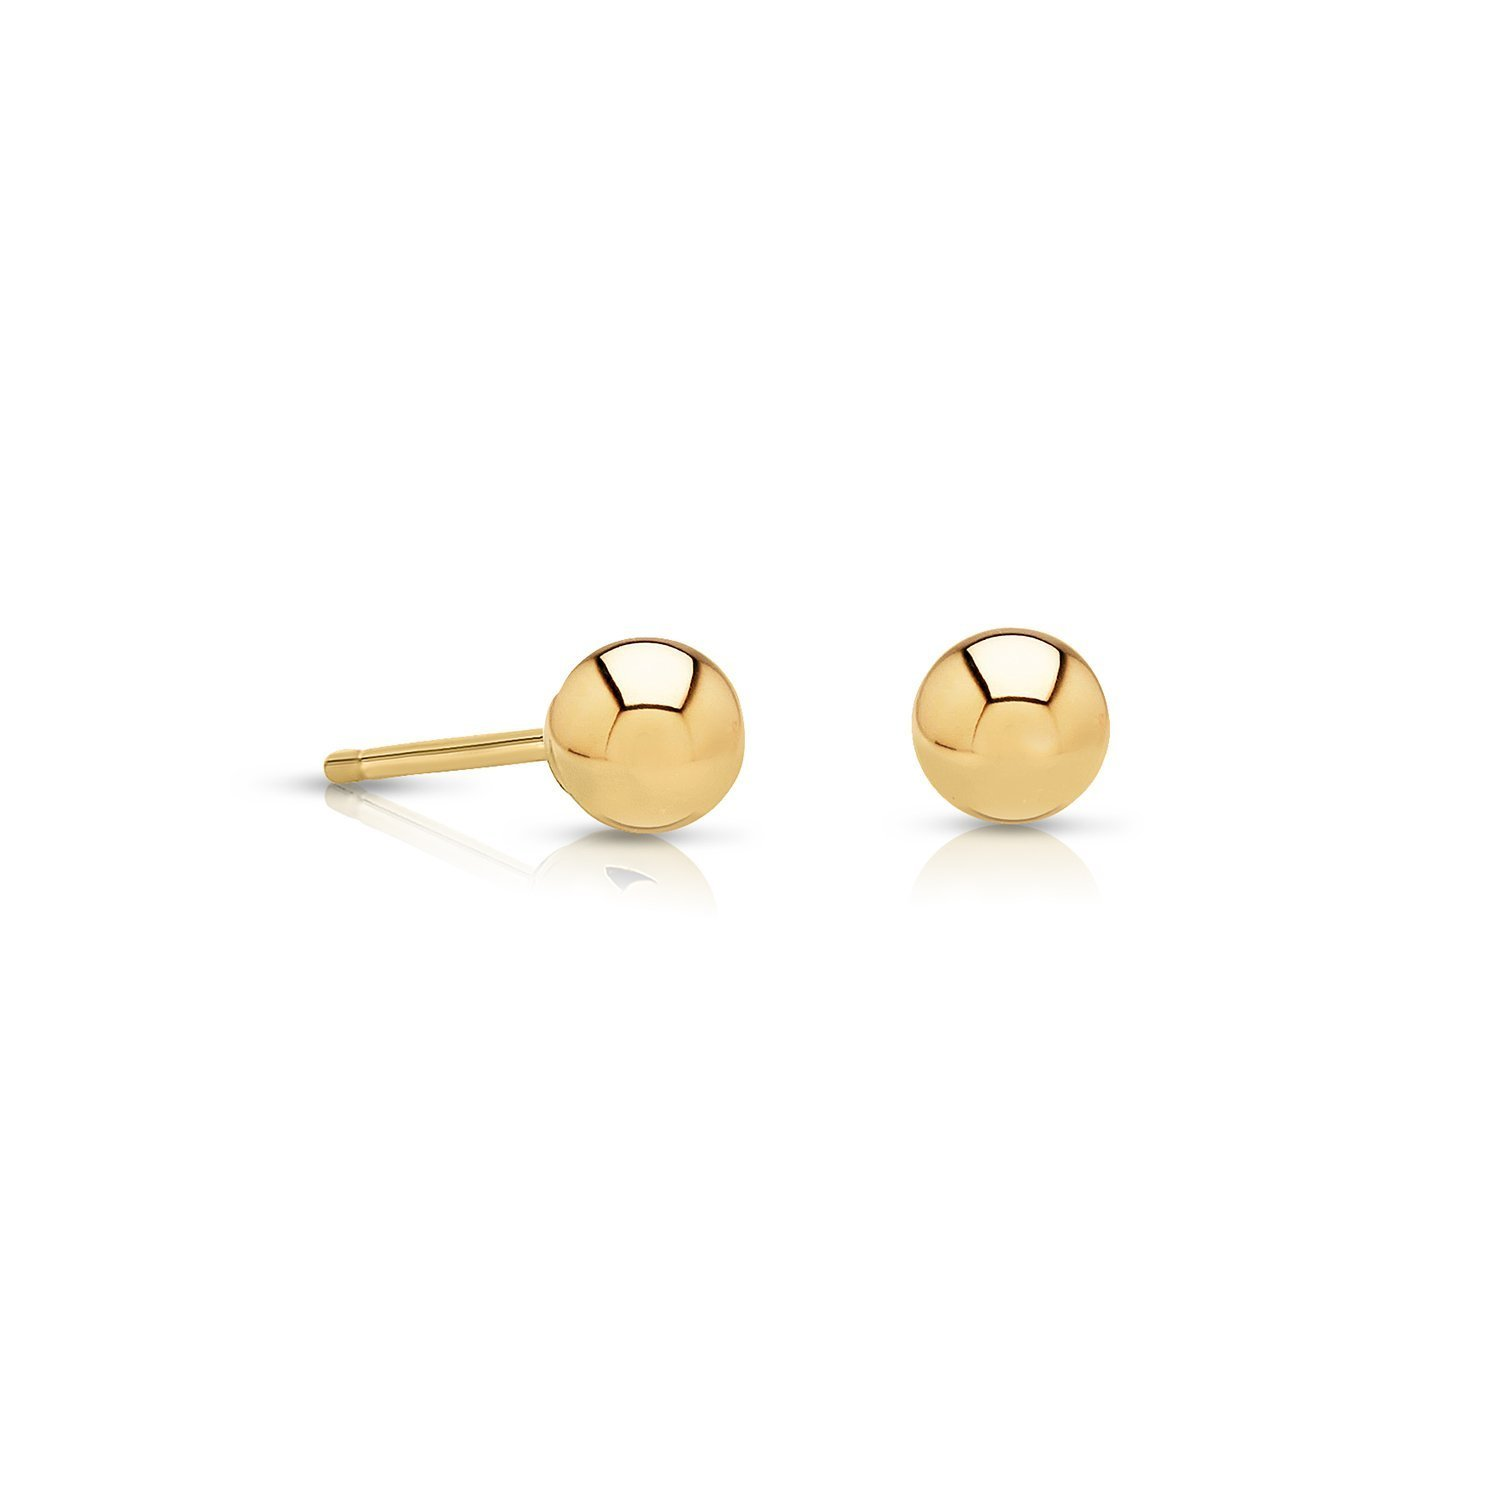 14k Gold Small Ball Stud Earrings with Secure and Comfortable Friction Backs, 3mm Diameter (yellow-gold)